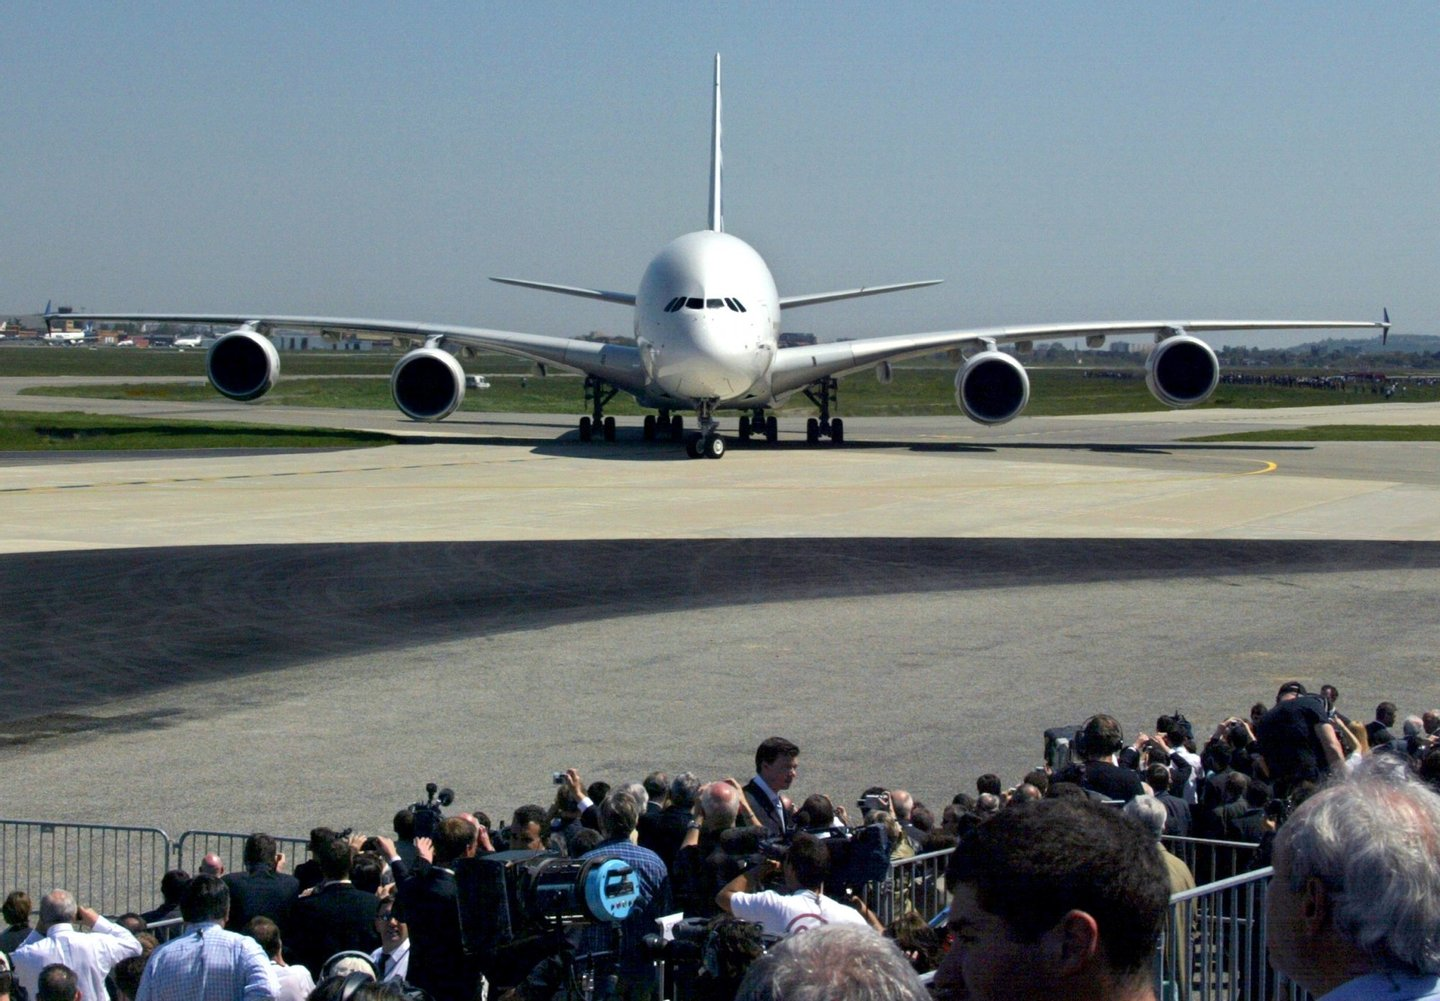 The giant double-decker Airbus A380, the world's largest commercial airliner, lands, 27 April 2005 on the tarmac of Toulouse-Blagnac's airport. In a momentous gamble for Airbus Industries, the European aircraft maker that has punched its way to the top of the civil aircraft industry, the new plane challenges the Boeing 747's long dominance of the jumbo jet market. AFP PHOTO GEORGES GOBET (Photo credit should read GEORGES GOBET/AFP/Getty Images)